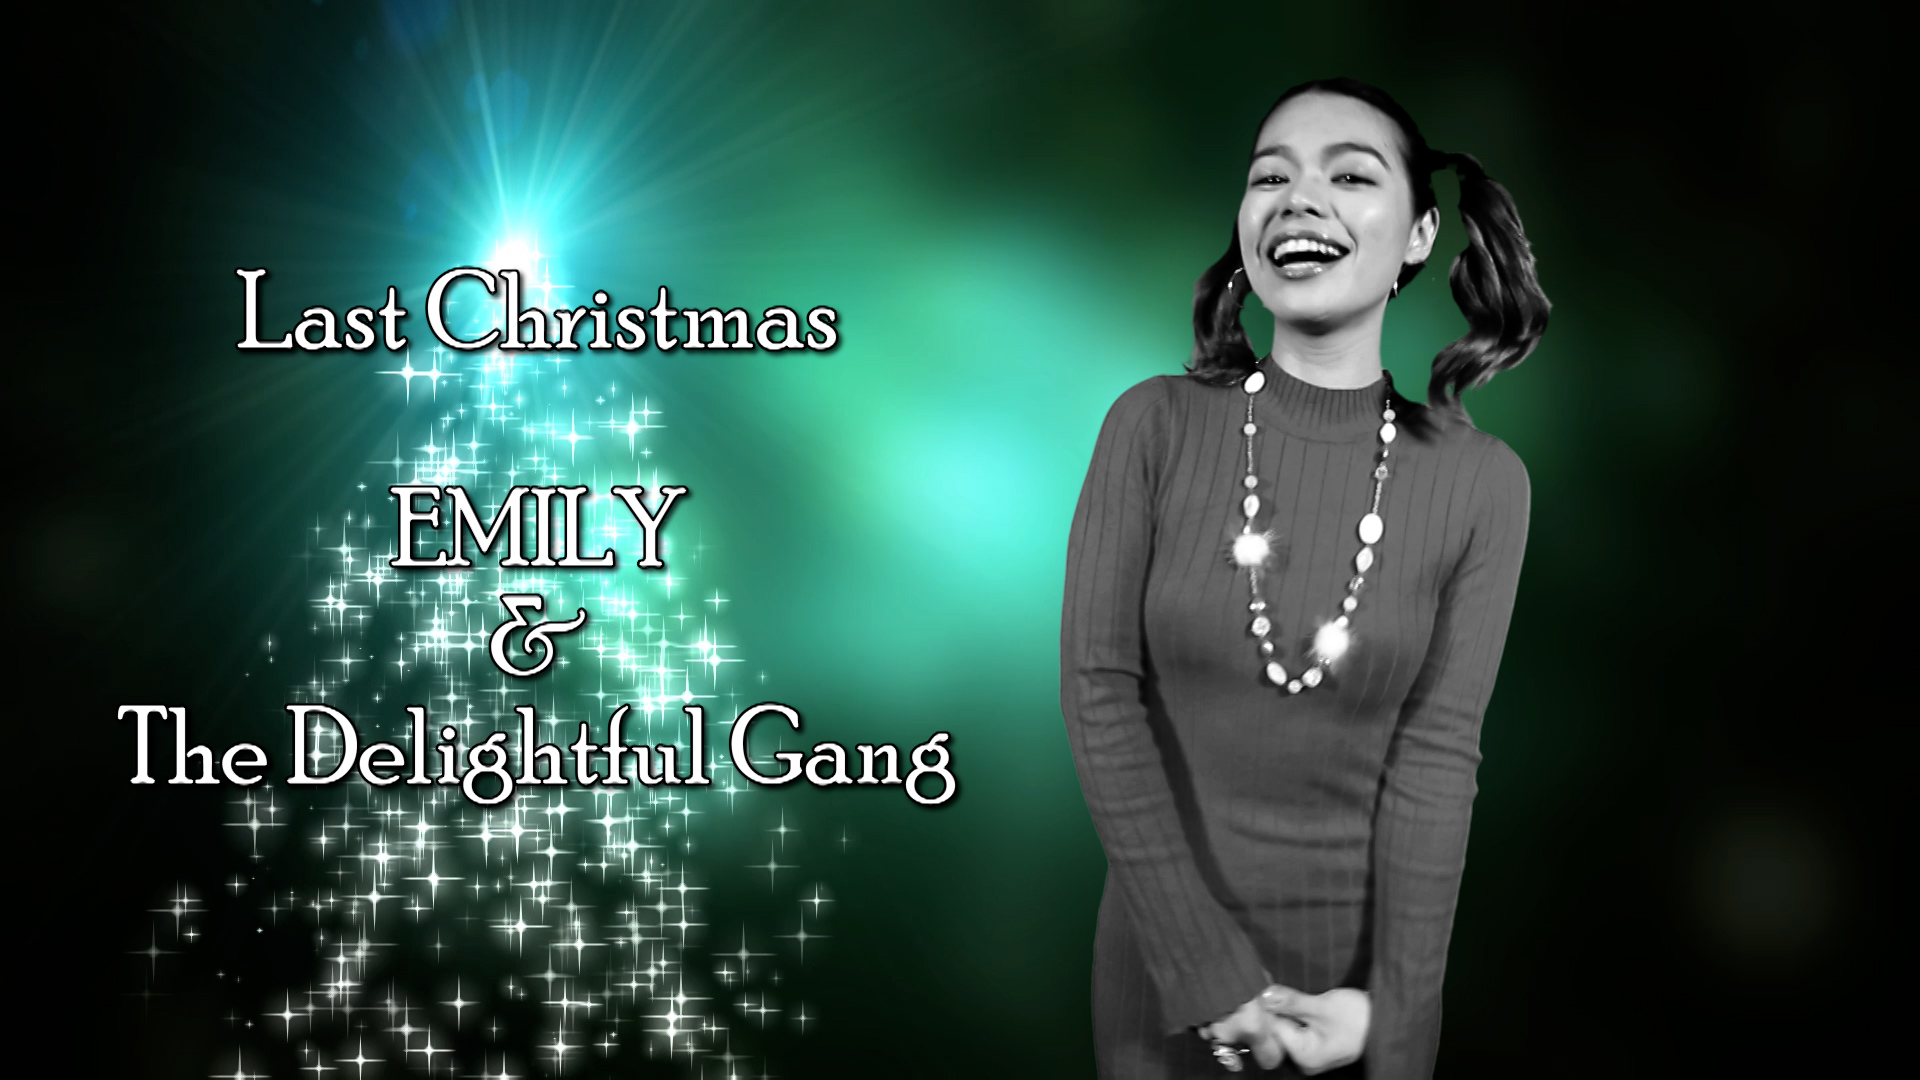 Last Christmas - EMILY & The Delightful Gang